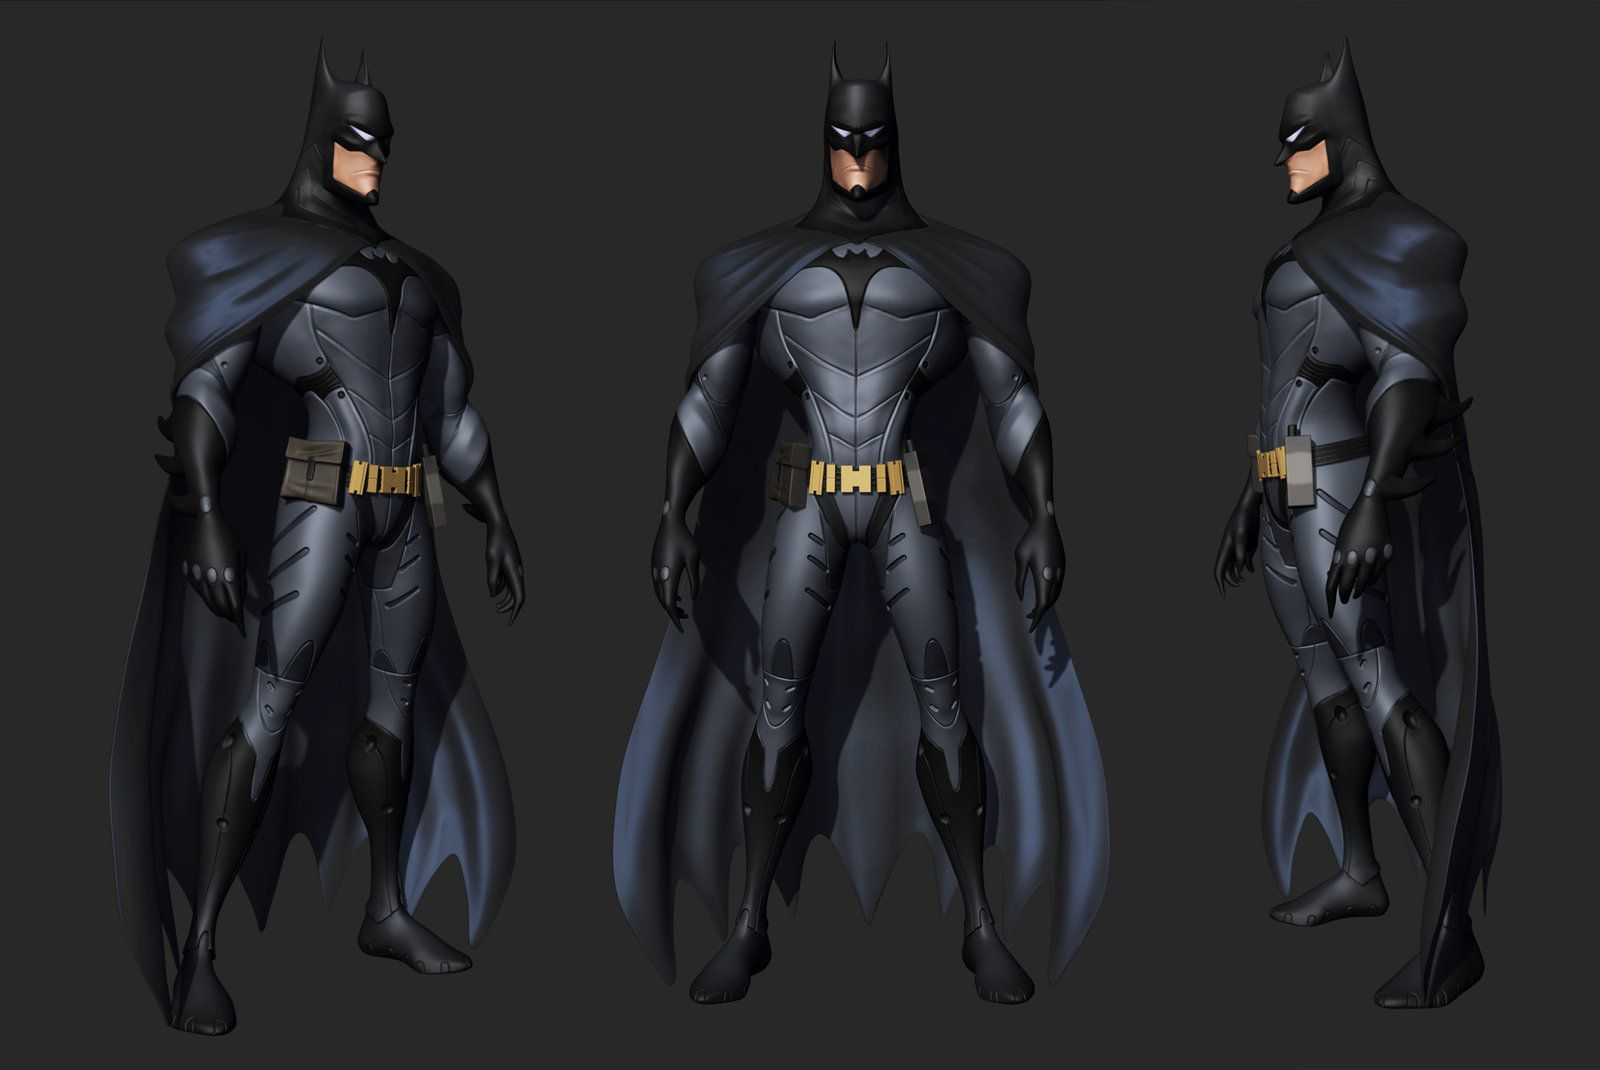 Batman Sculpt Based on Amazing concept by D.Arya, Ashish Parashar on ArtStation at http://www.artstation.com/artwork/batman-sculpt-based-on-amazing-concept-by-d-arya-b114f287-8f0e-4dc3-accf-ae3d0d2fd78b